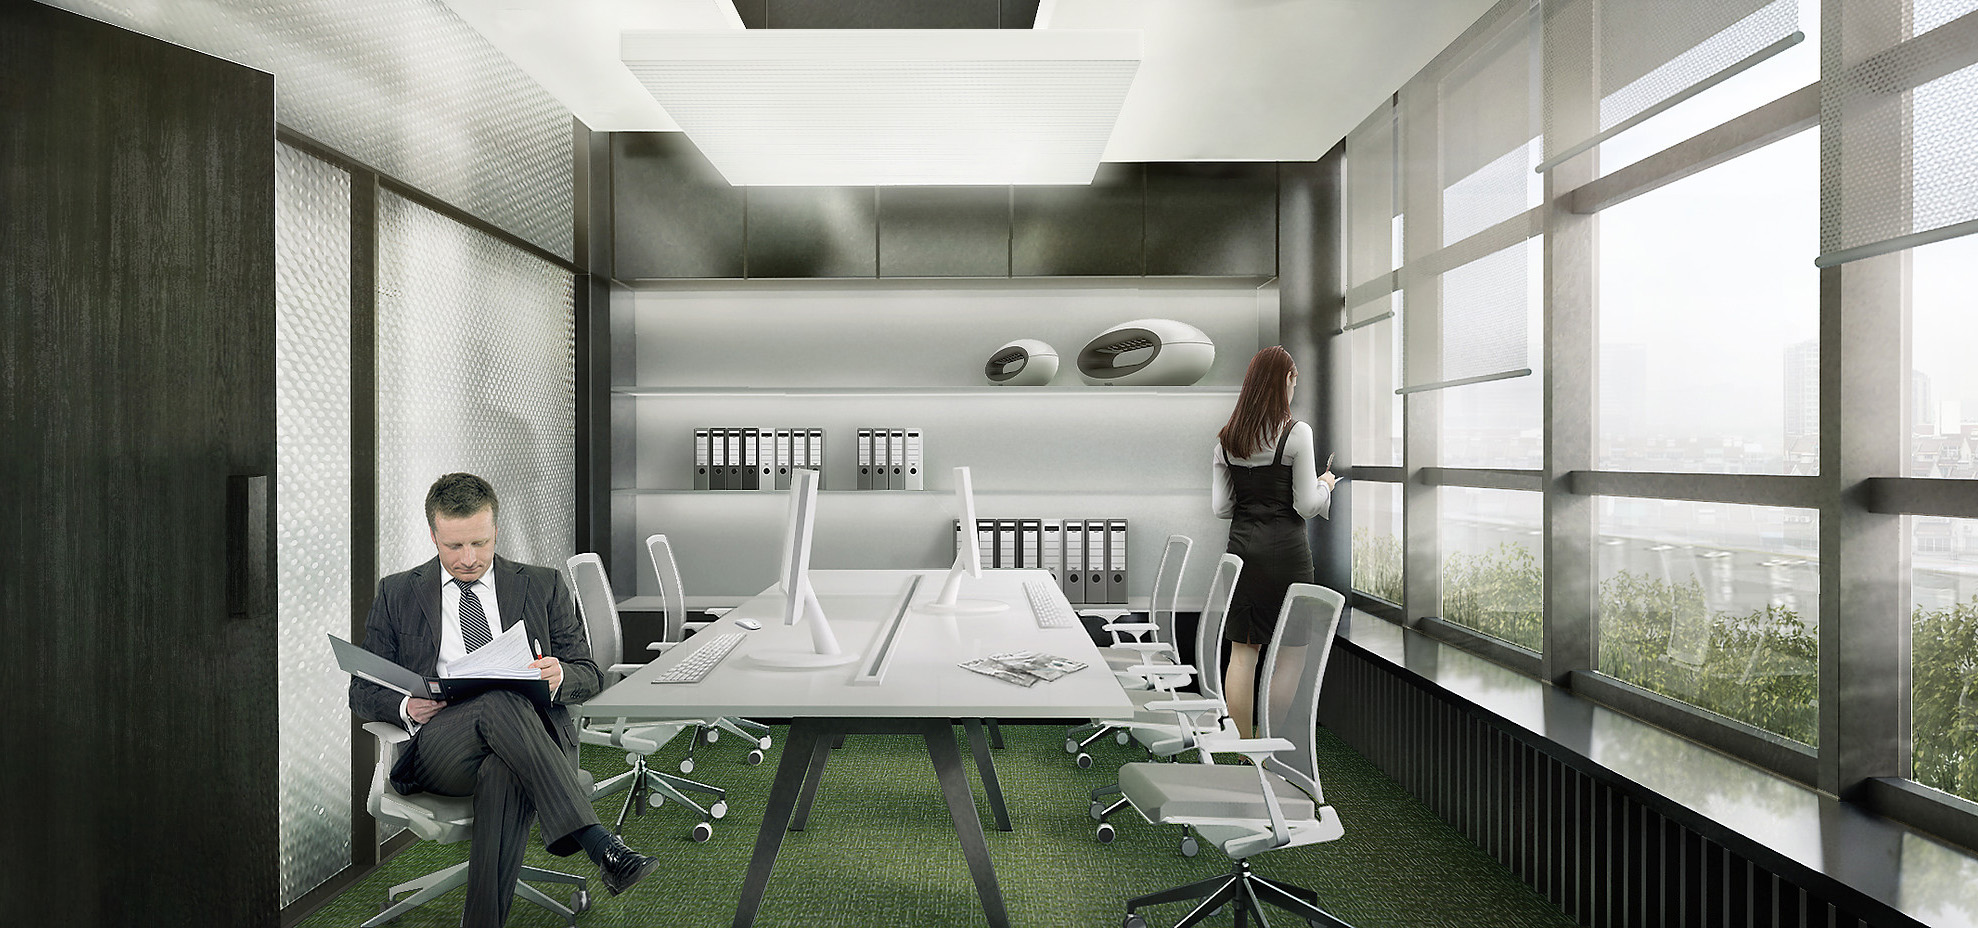 6-Person Private Office